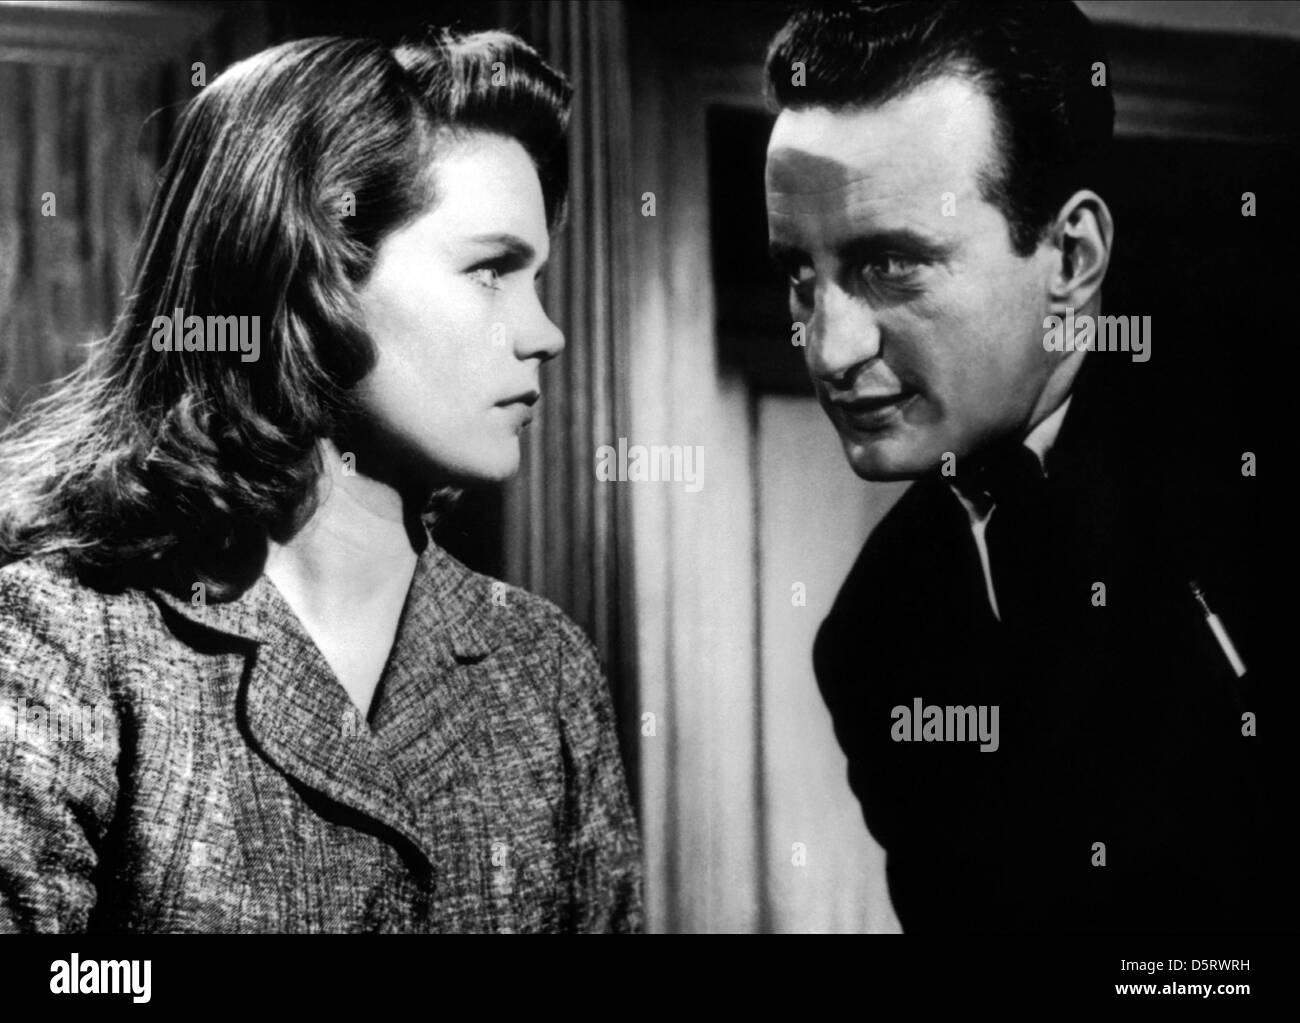 Anatomy Of A Murder 1959 Lee Remick Black and White Stock Photos ...